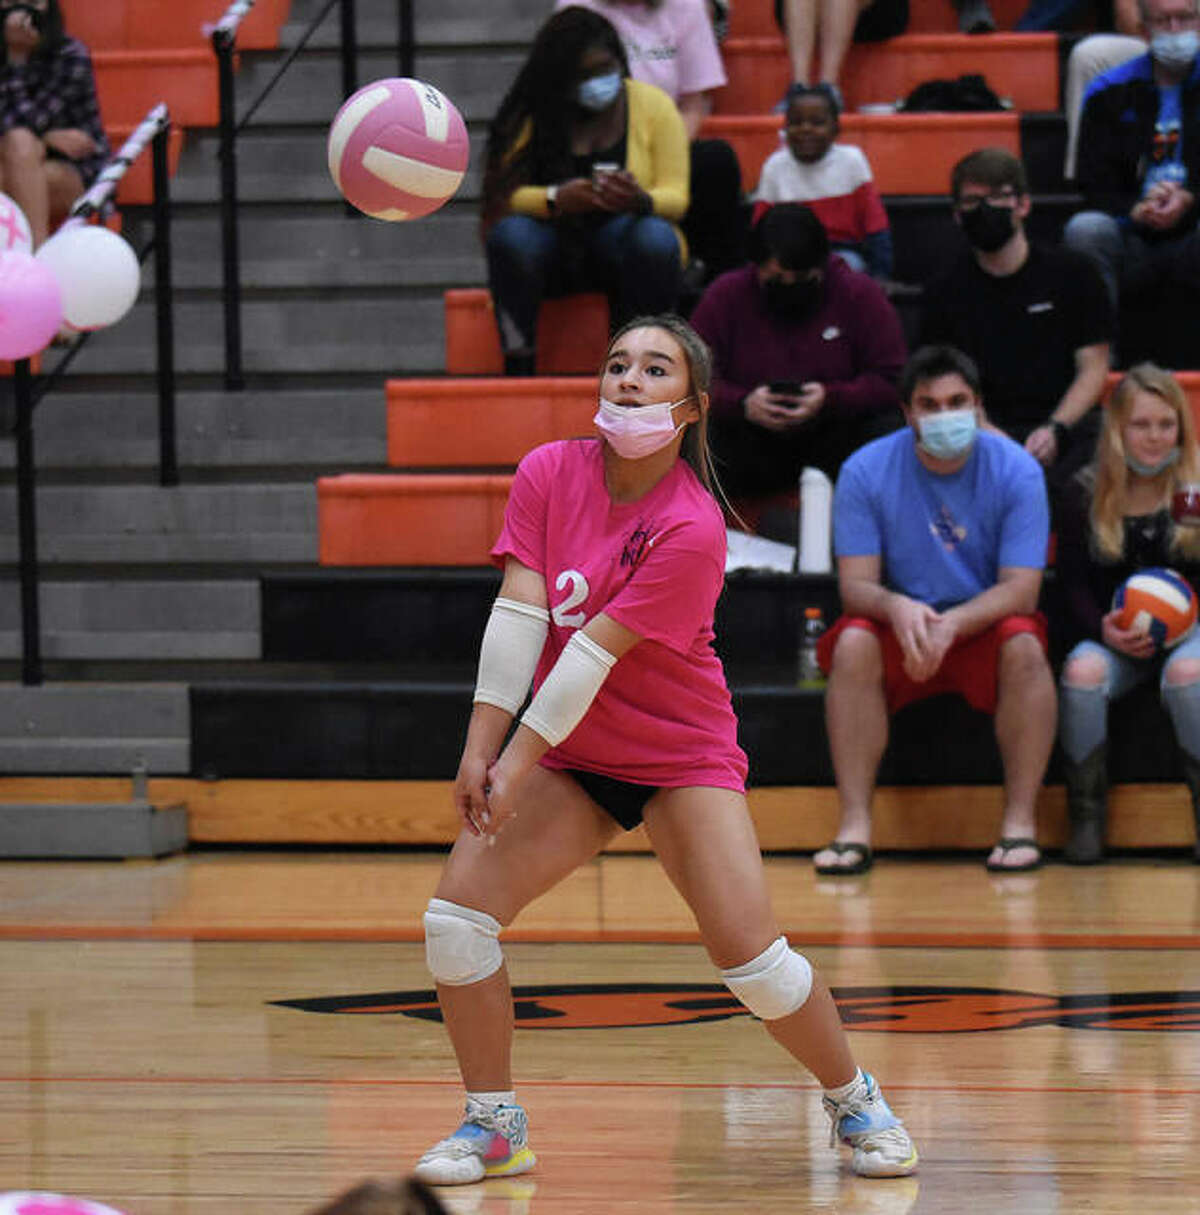 Edwardsville's Hanna Matarelli keeps a volley alive during the second game.